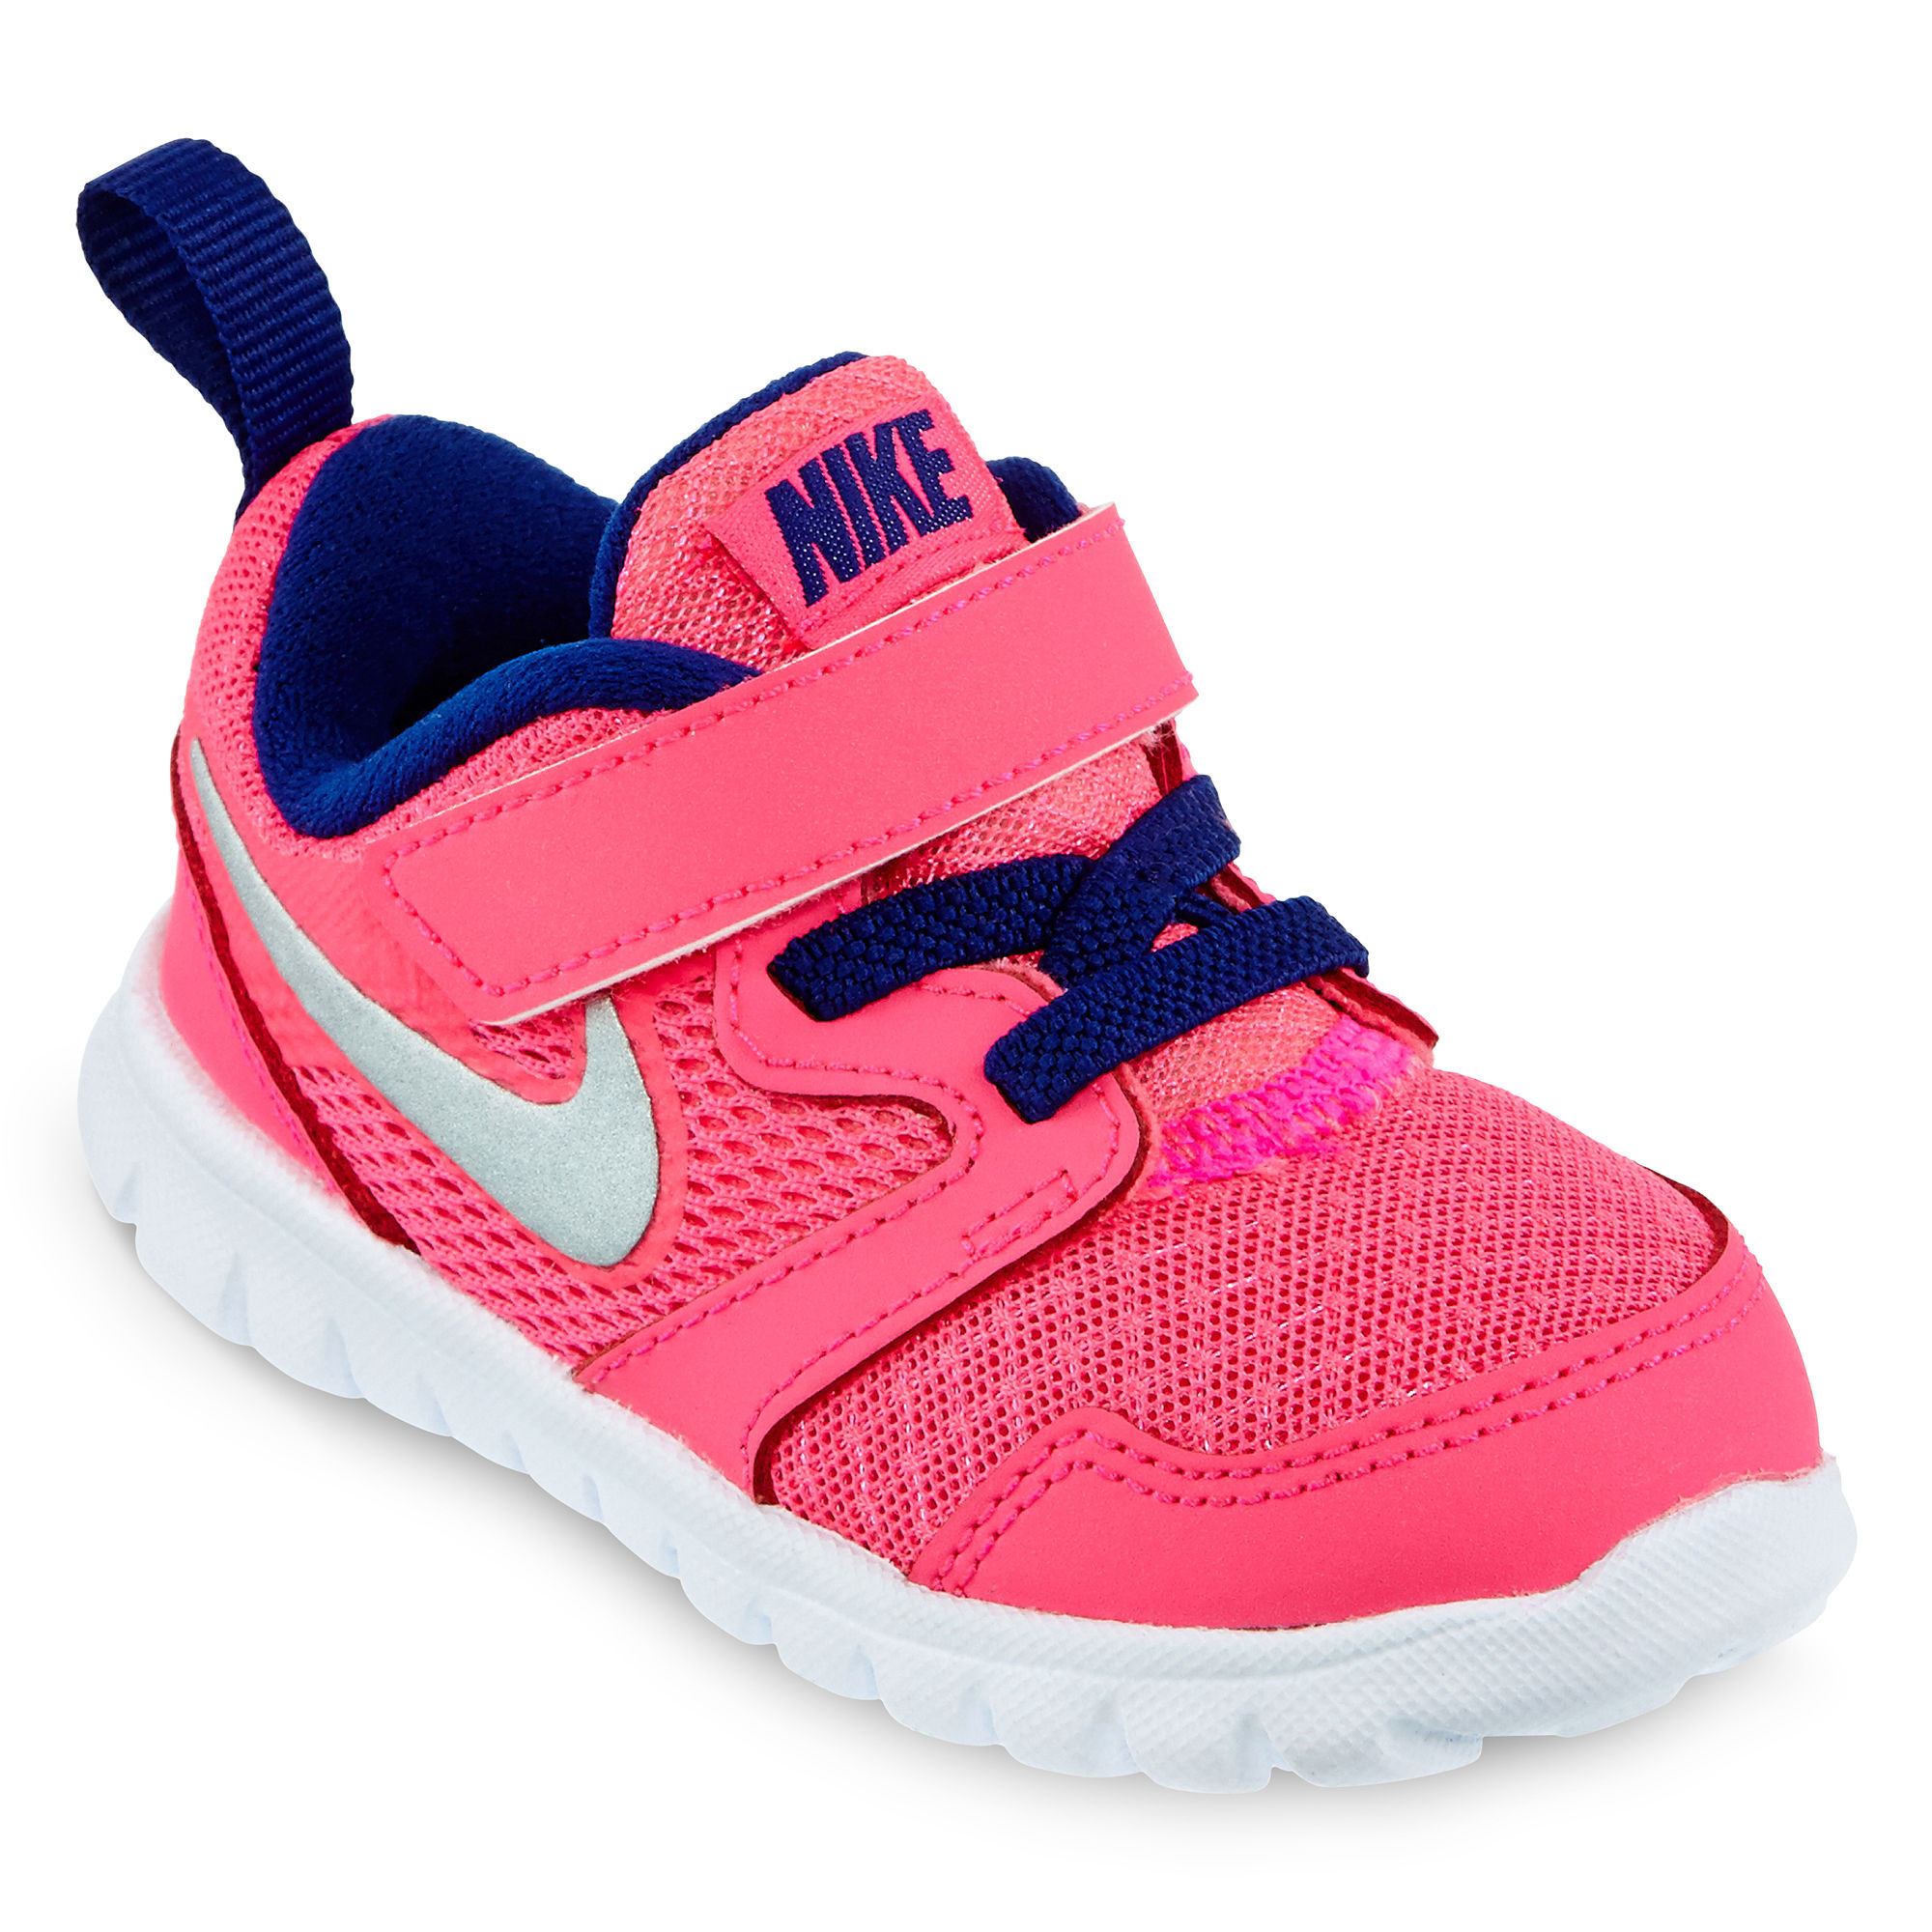 UPC Nike Flex Experience 3 Girls Running Shoes